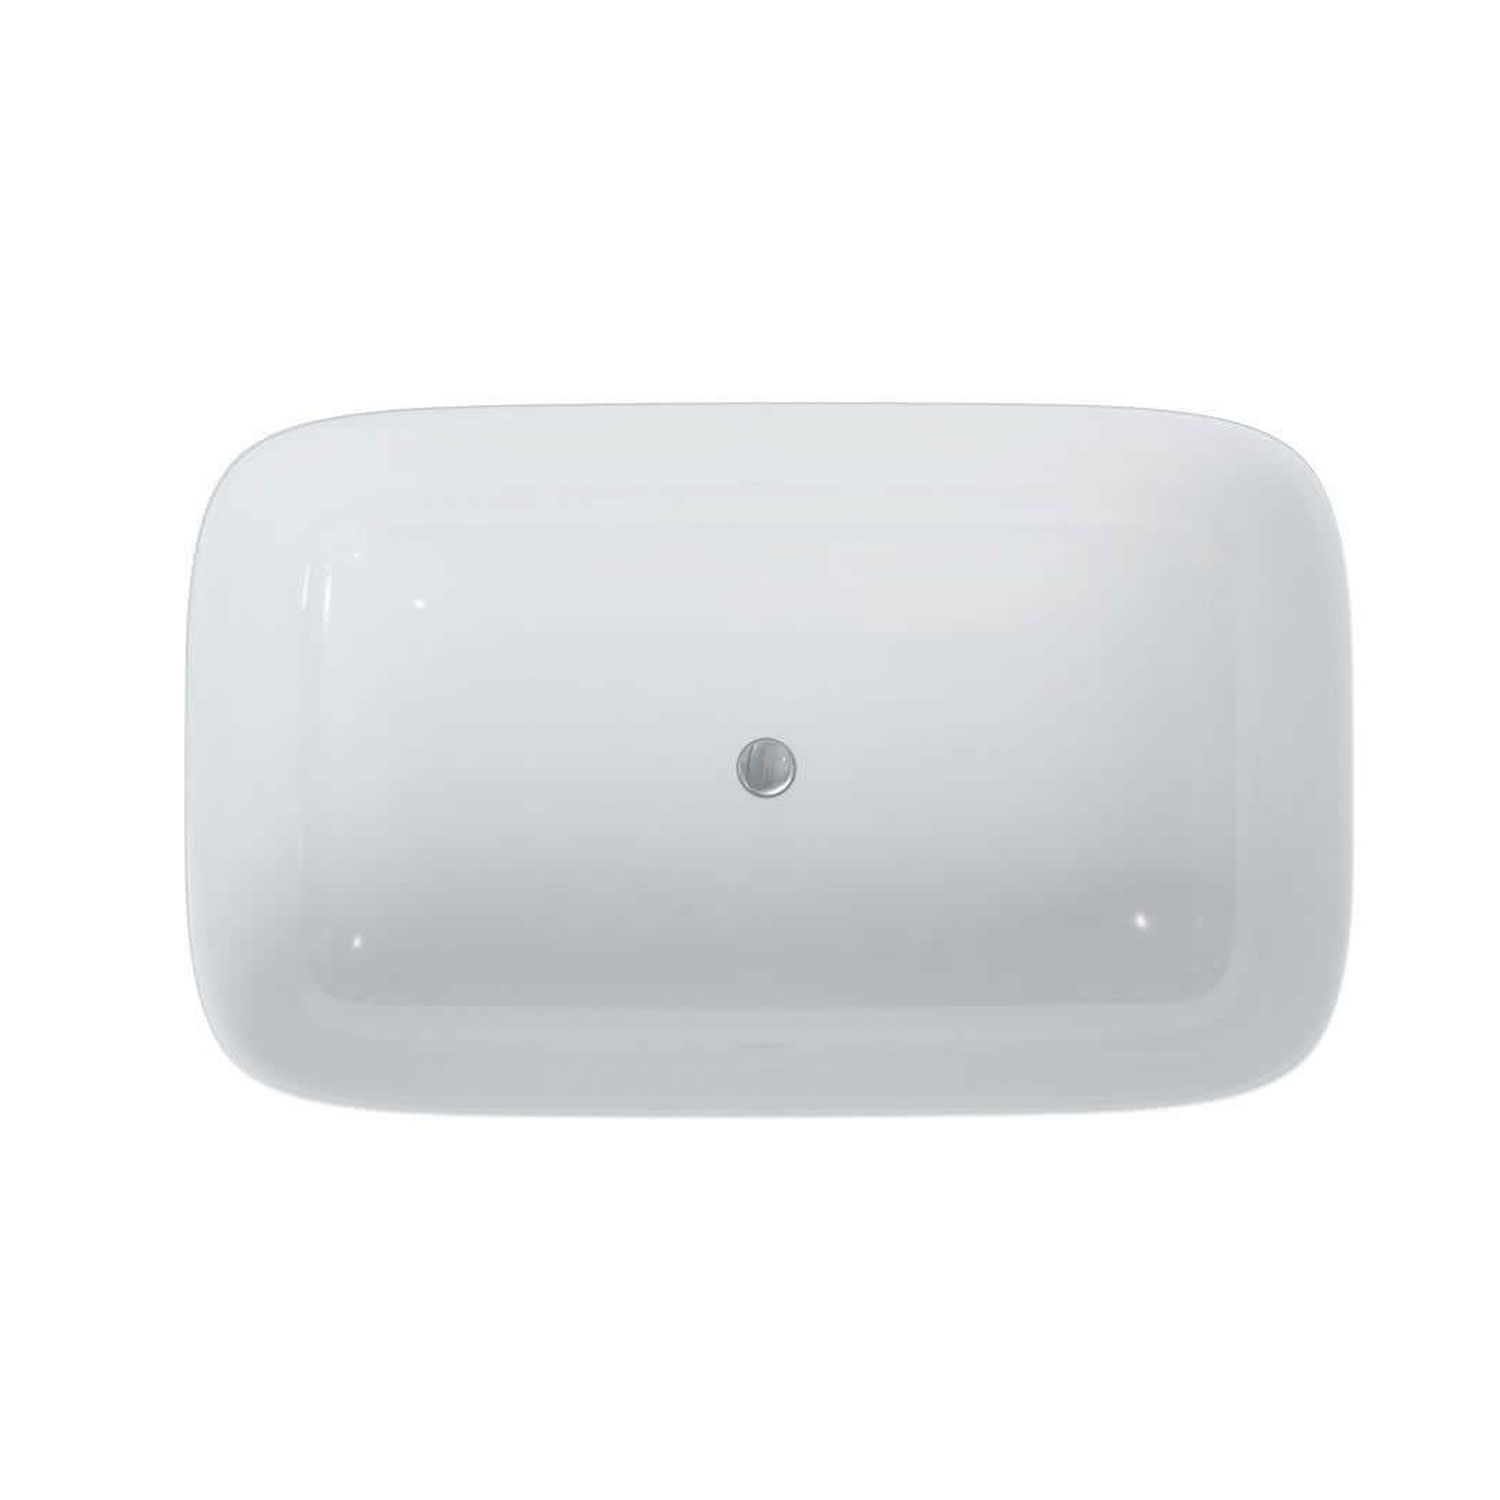 Clearwater Duo Freestanding Bath 1550mm x 950mm - Clear Stone-1